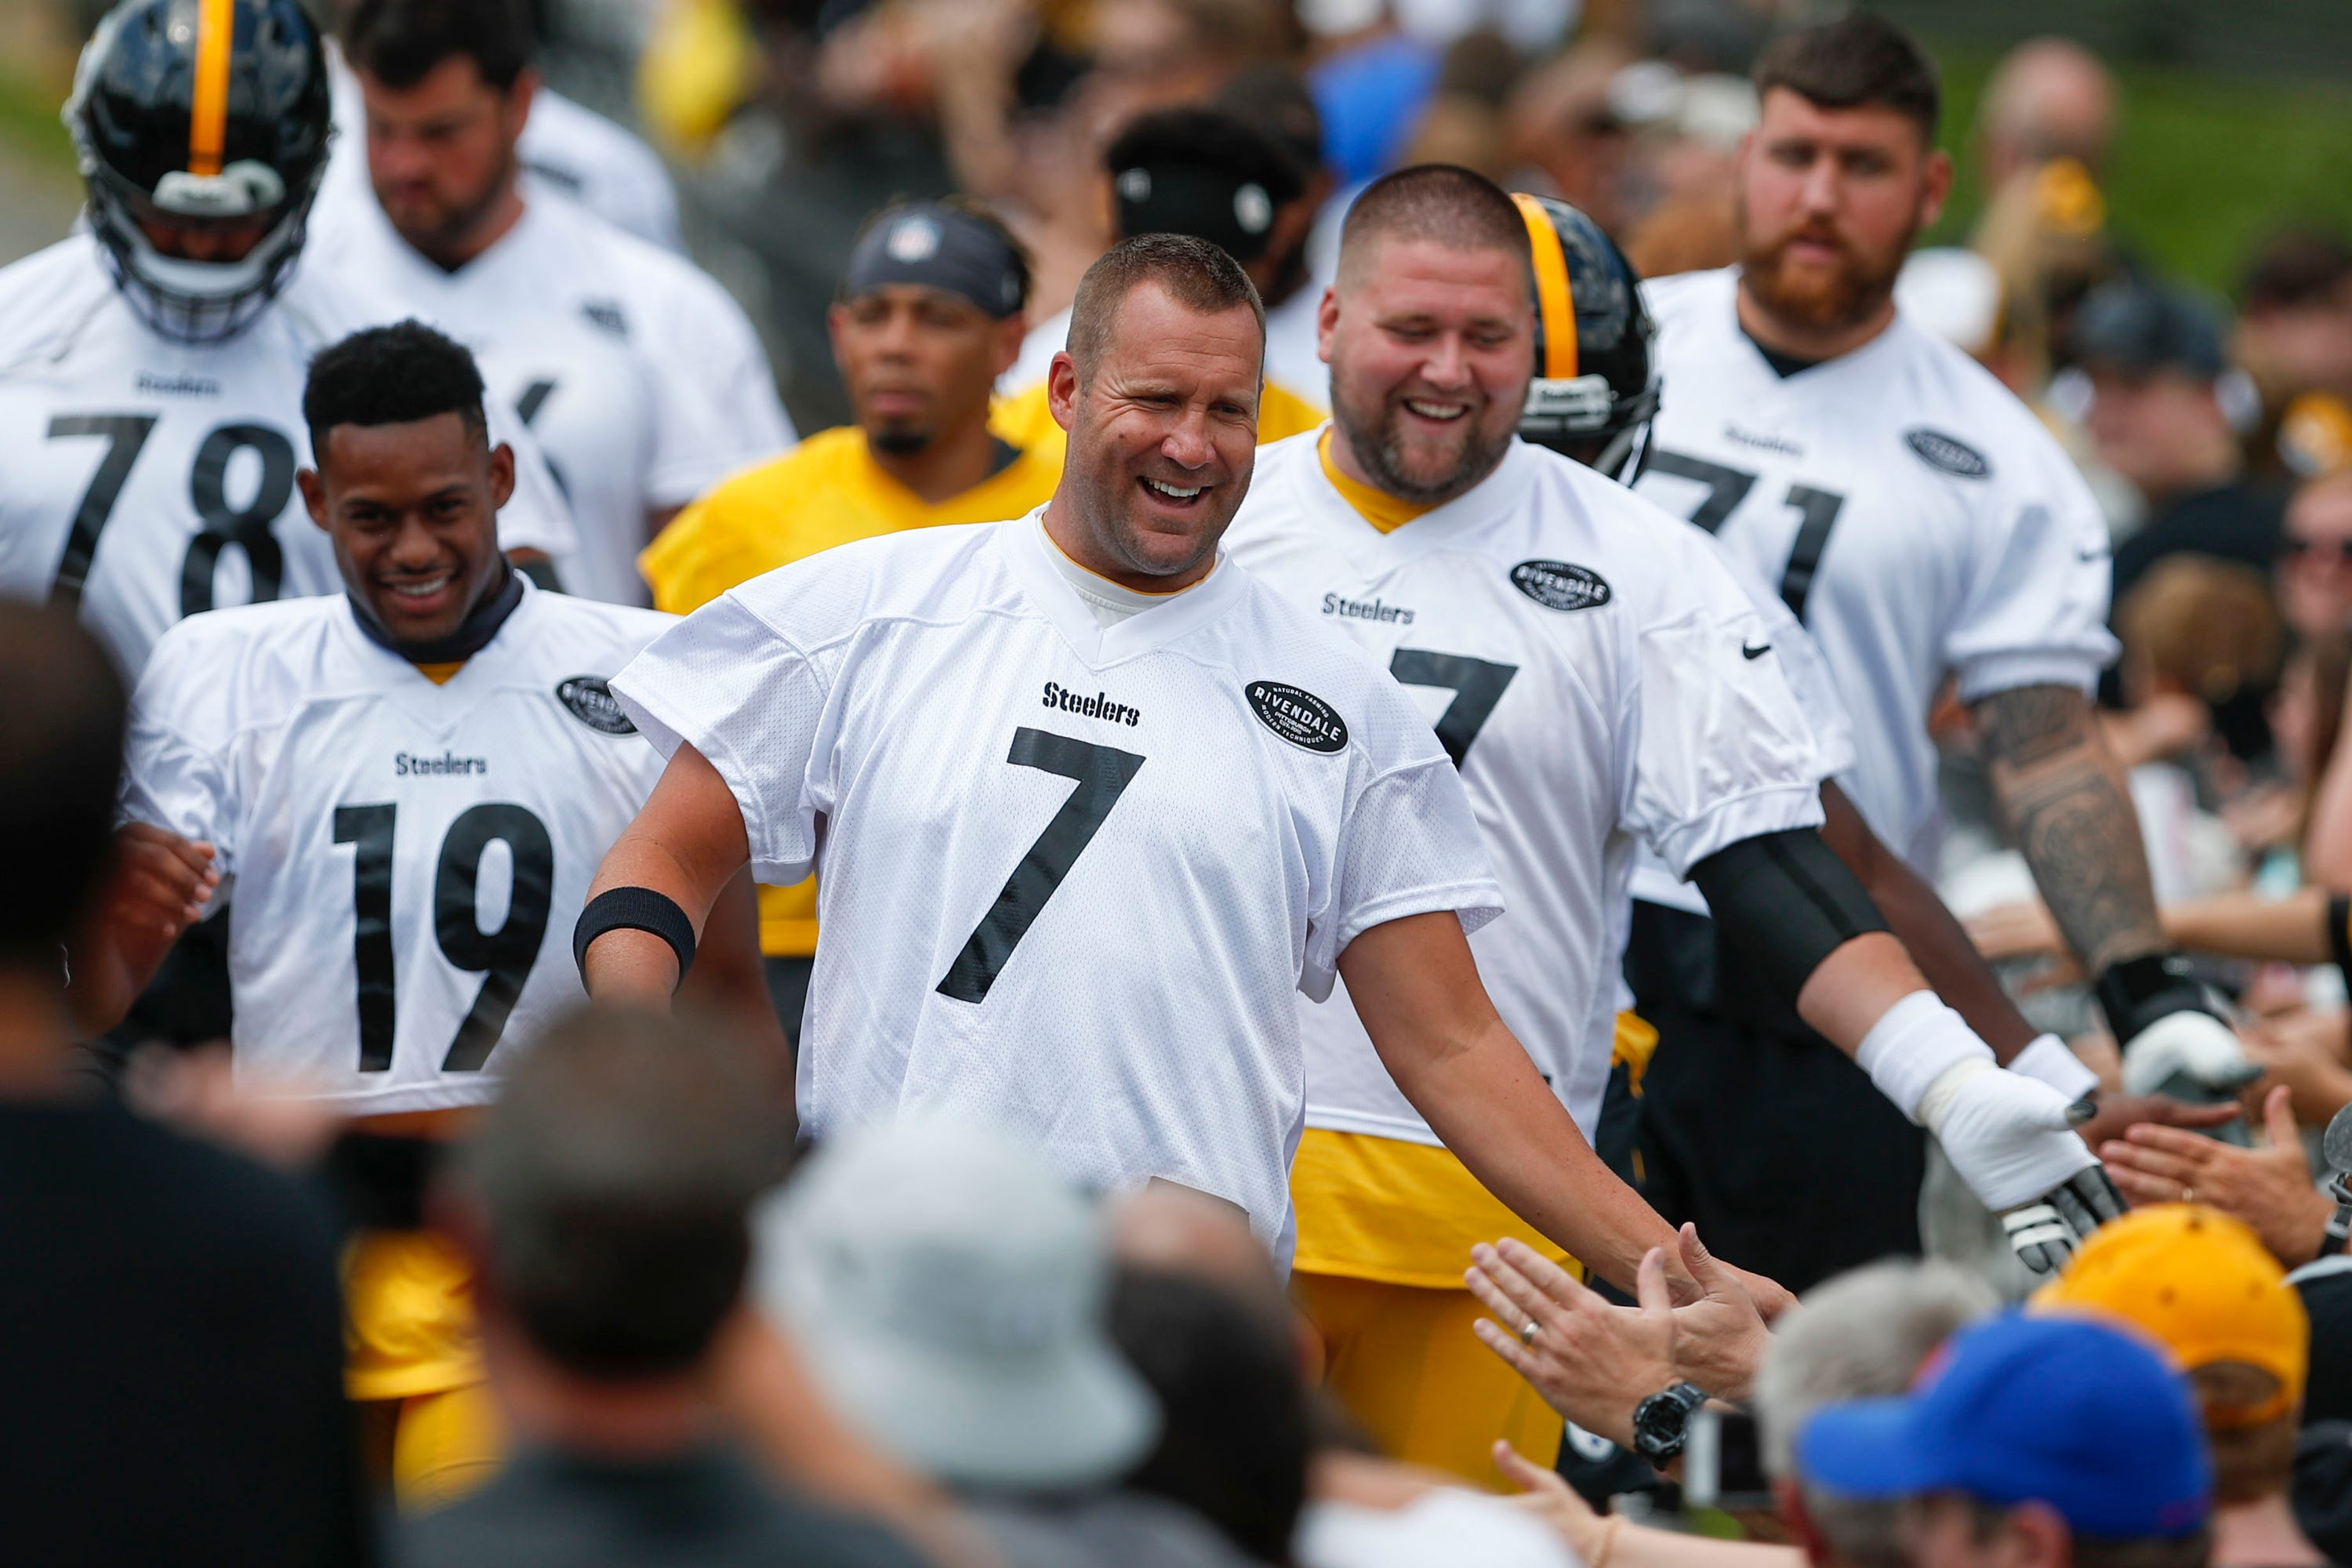 Roethlisberger, Steelers ready to move on from Brown, drama